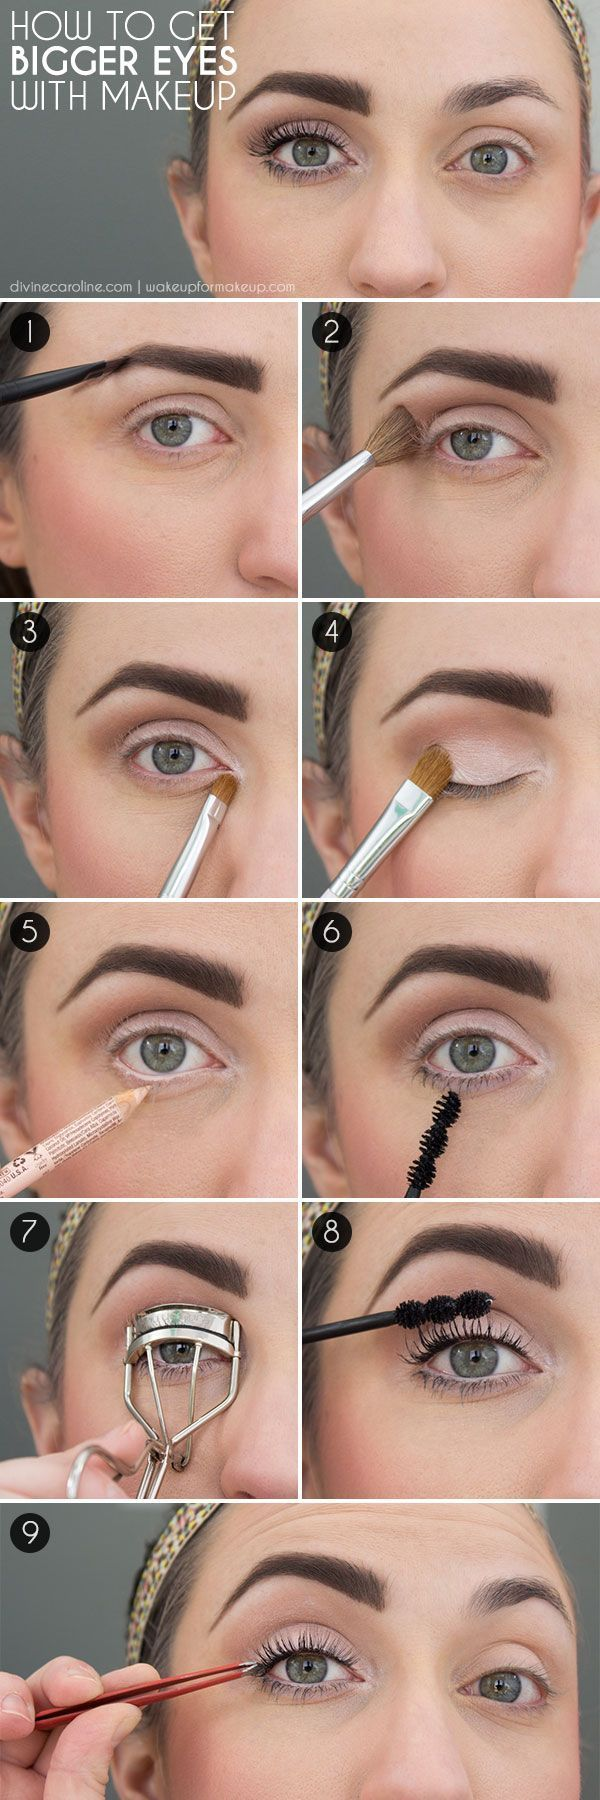 How to : Make your Eyes Look Bigger With Makeup